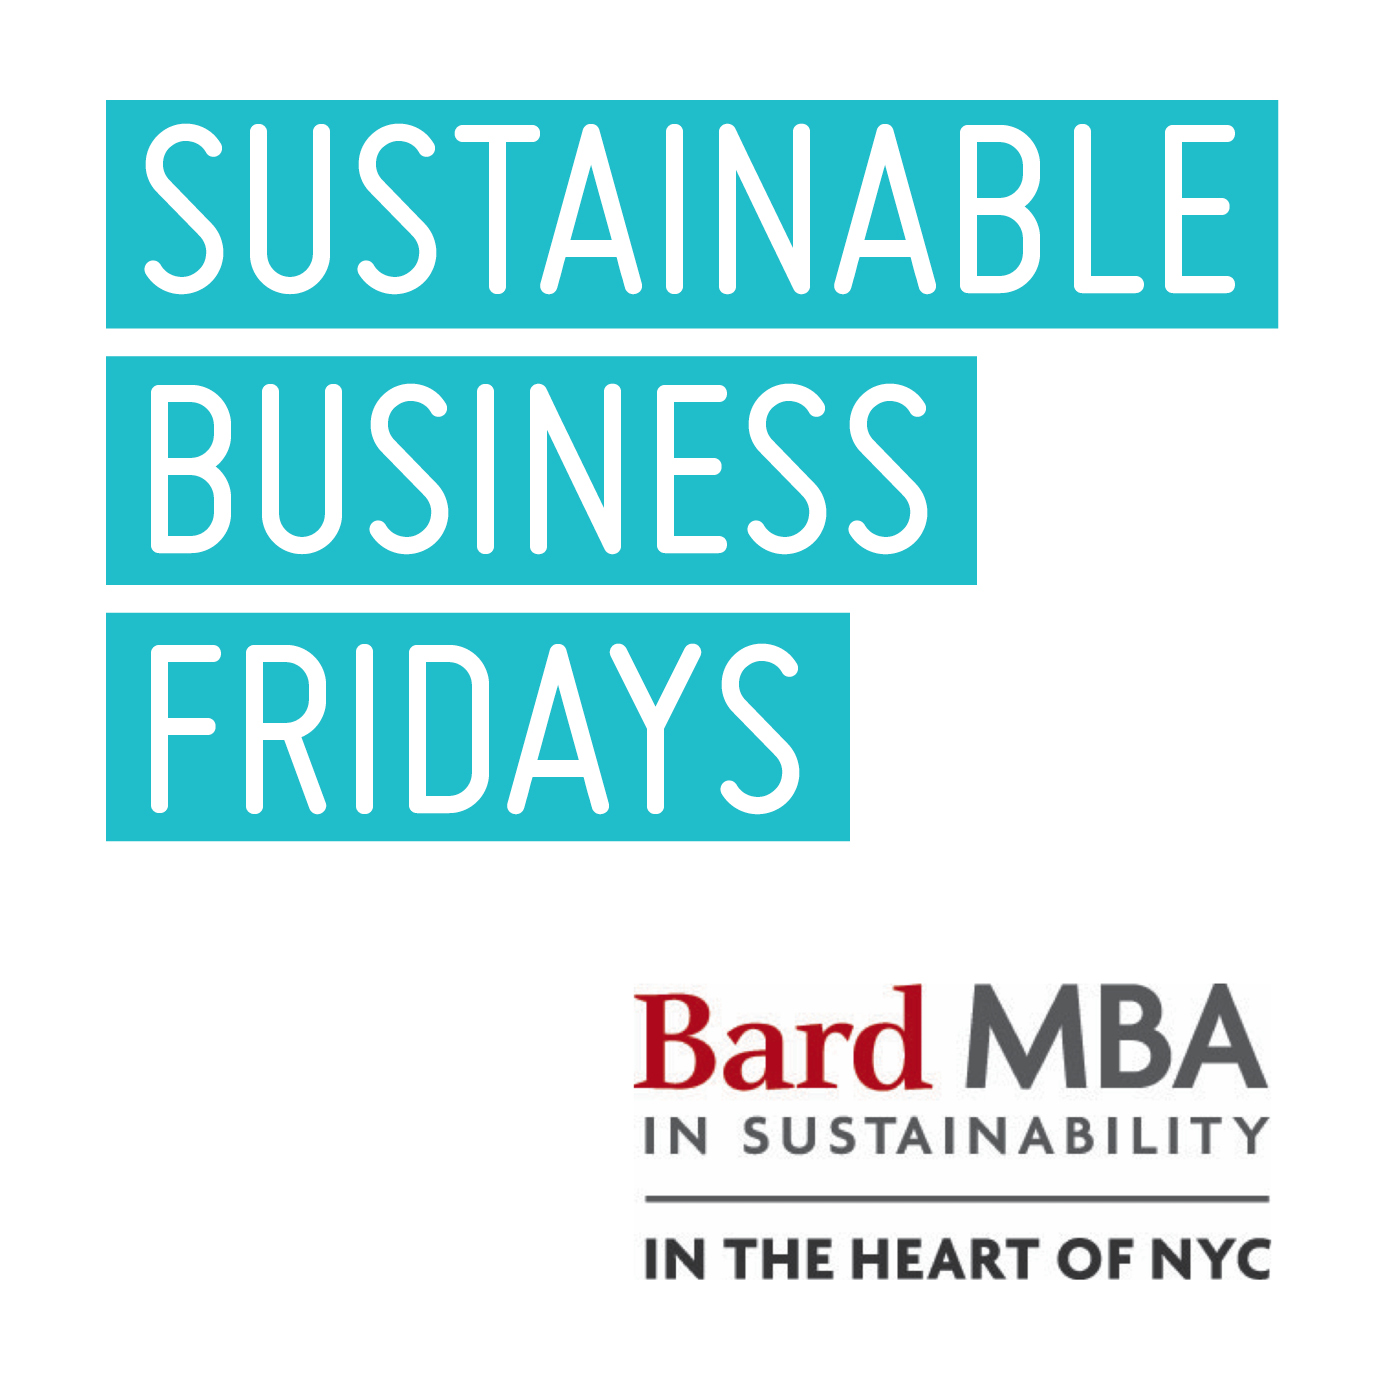 Bard MBA - Sustainable Business Fridays Series